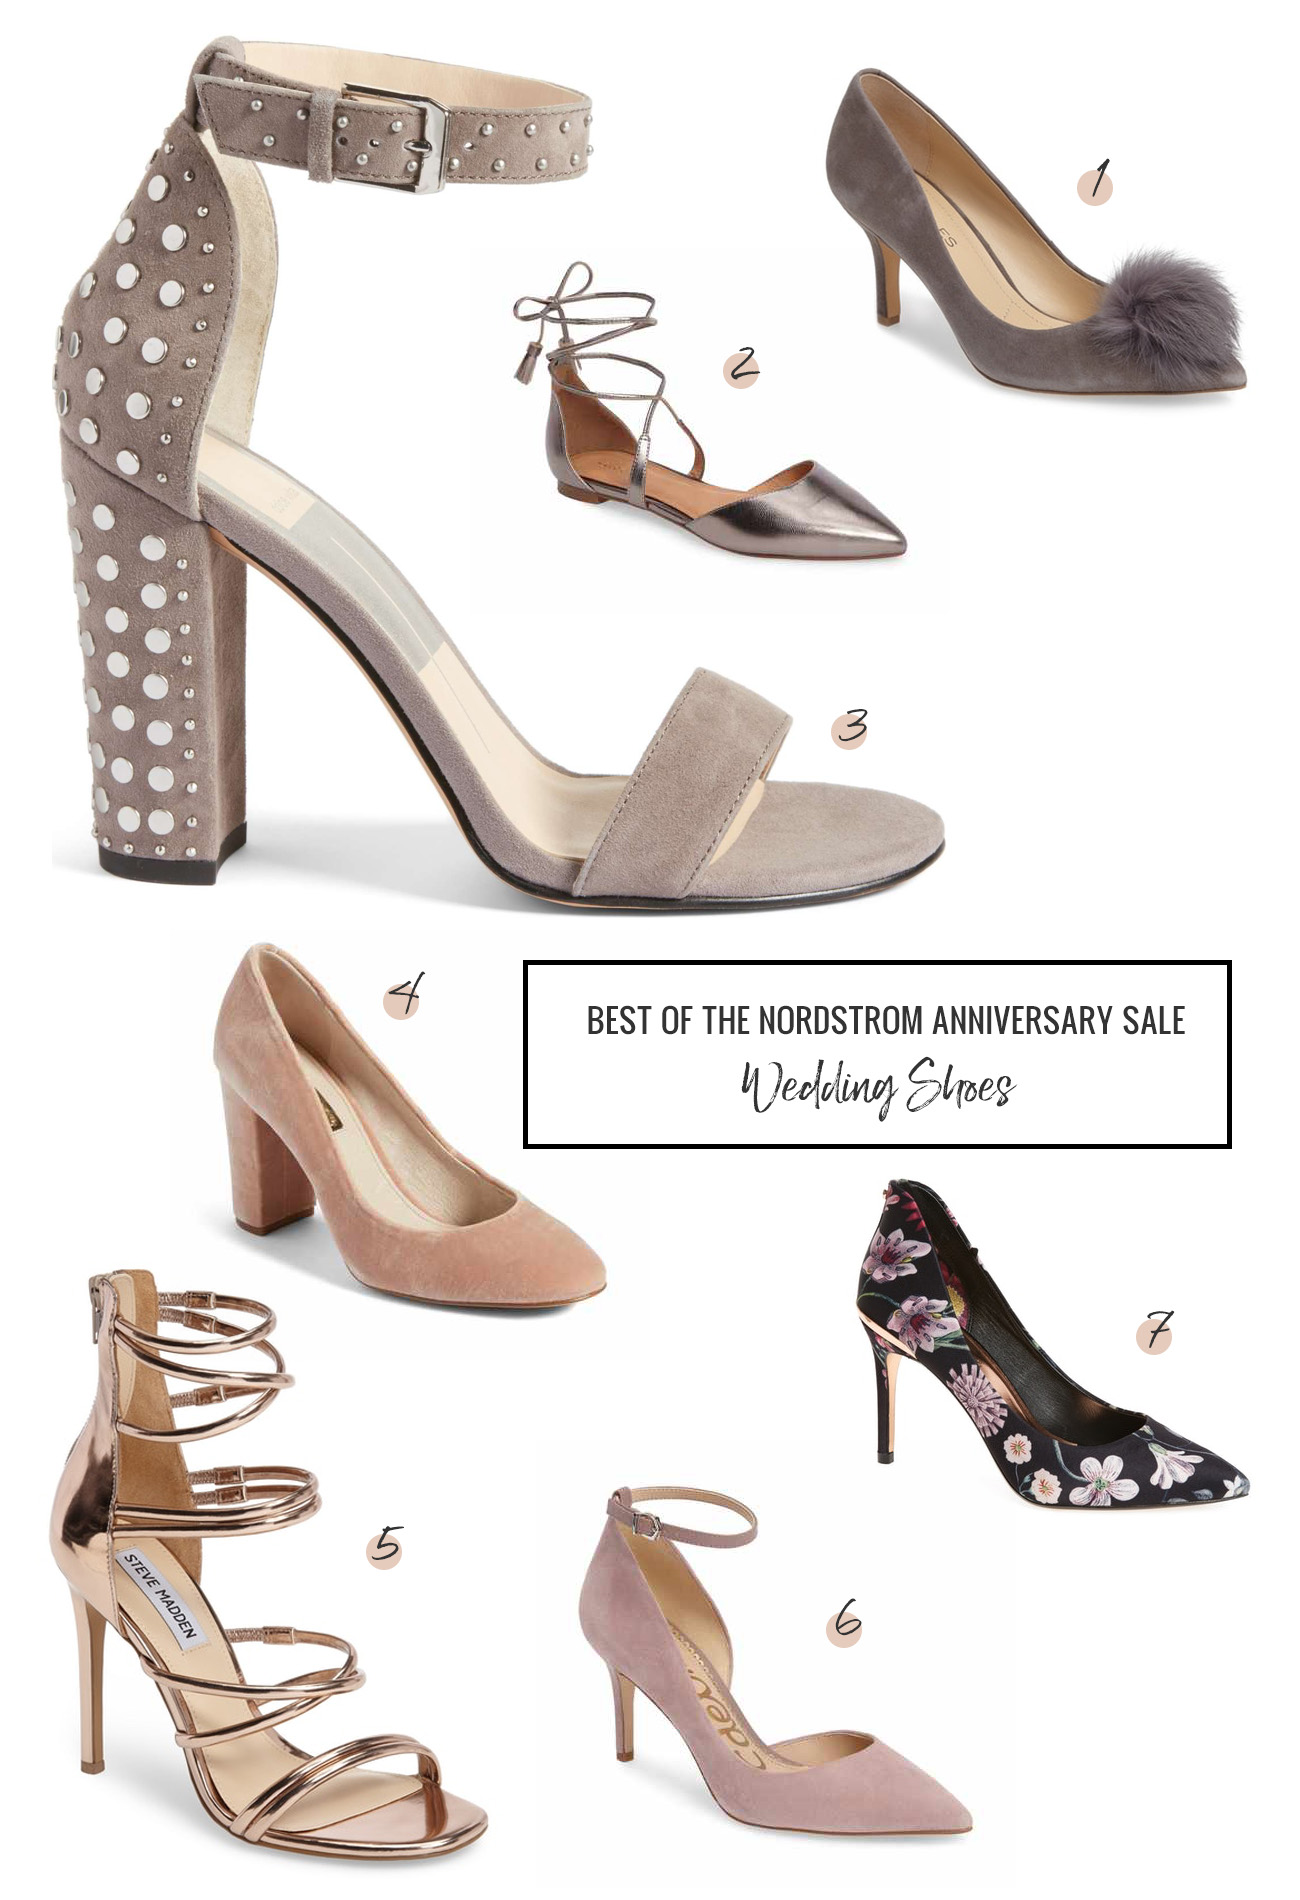 485bac67f73 Nordstrom Anniversary Sale - Our Shoe Picks! - Green Wedding Shoes